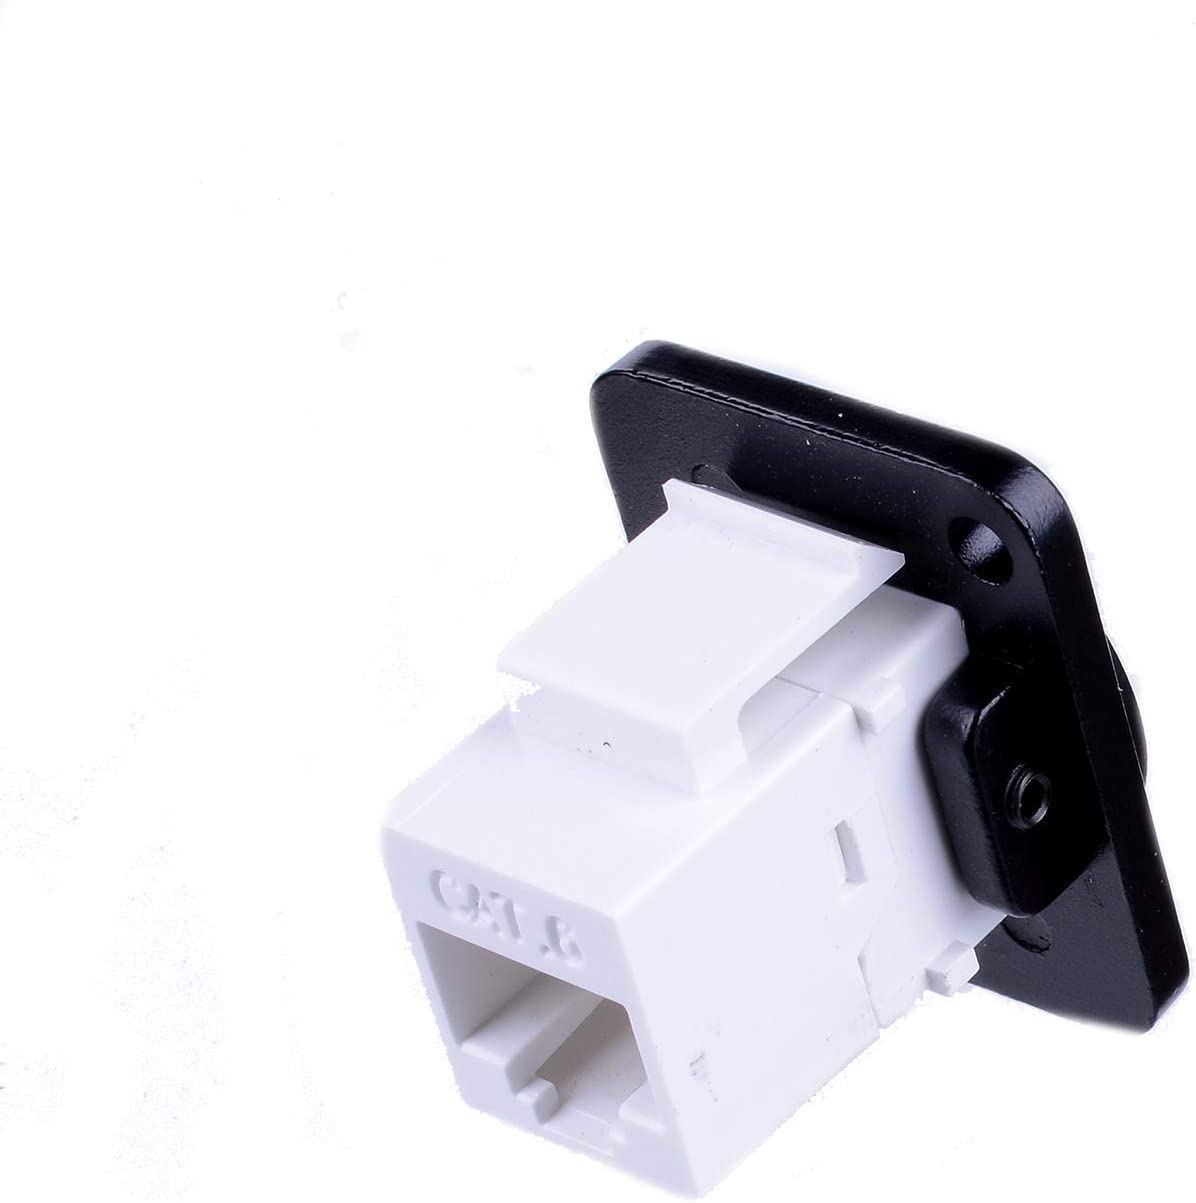 RJ45 Ethernet Connector 100Mbit//s Data Transfer CAT6 Dual Port Network Socket 86 Panel Mount 8 Pin D Shape Signal Aviation Connectors for Audio Video Optoelectronic Network